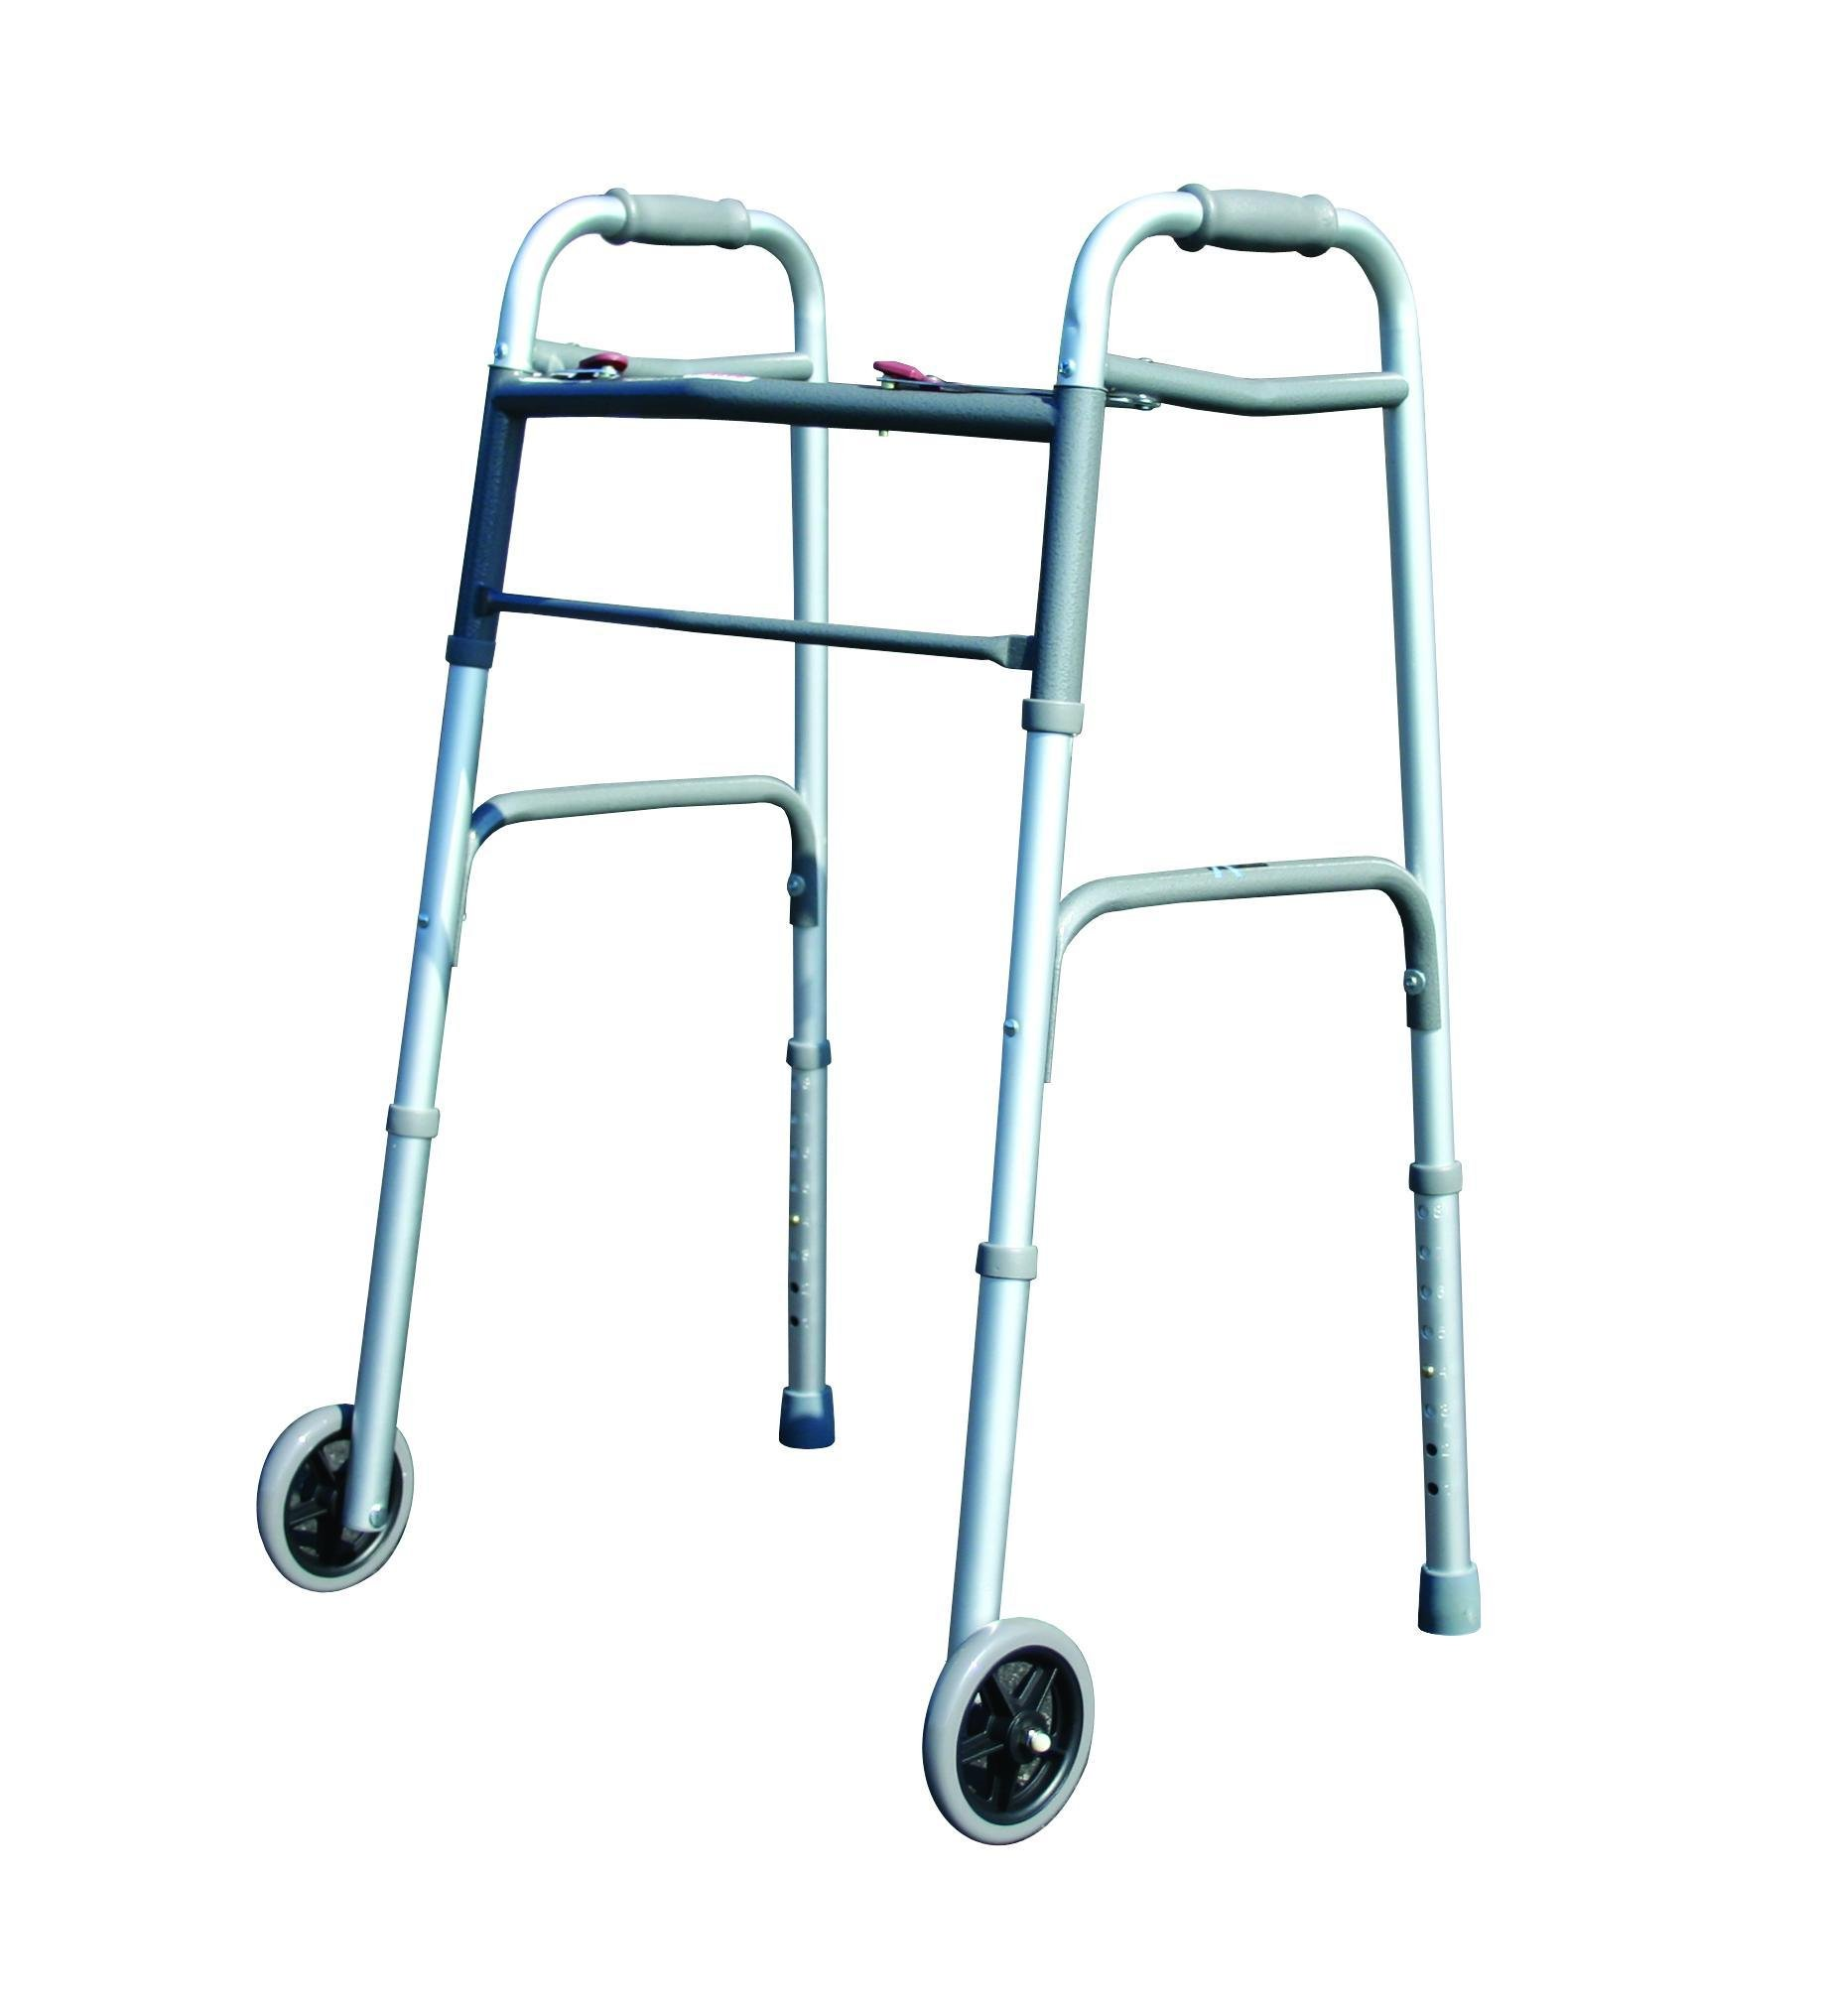 Deluxe 2 Button Folding Walker With 5'' Wheels Box of 4